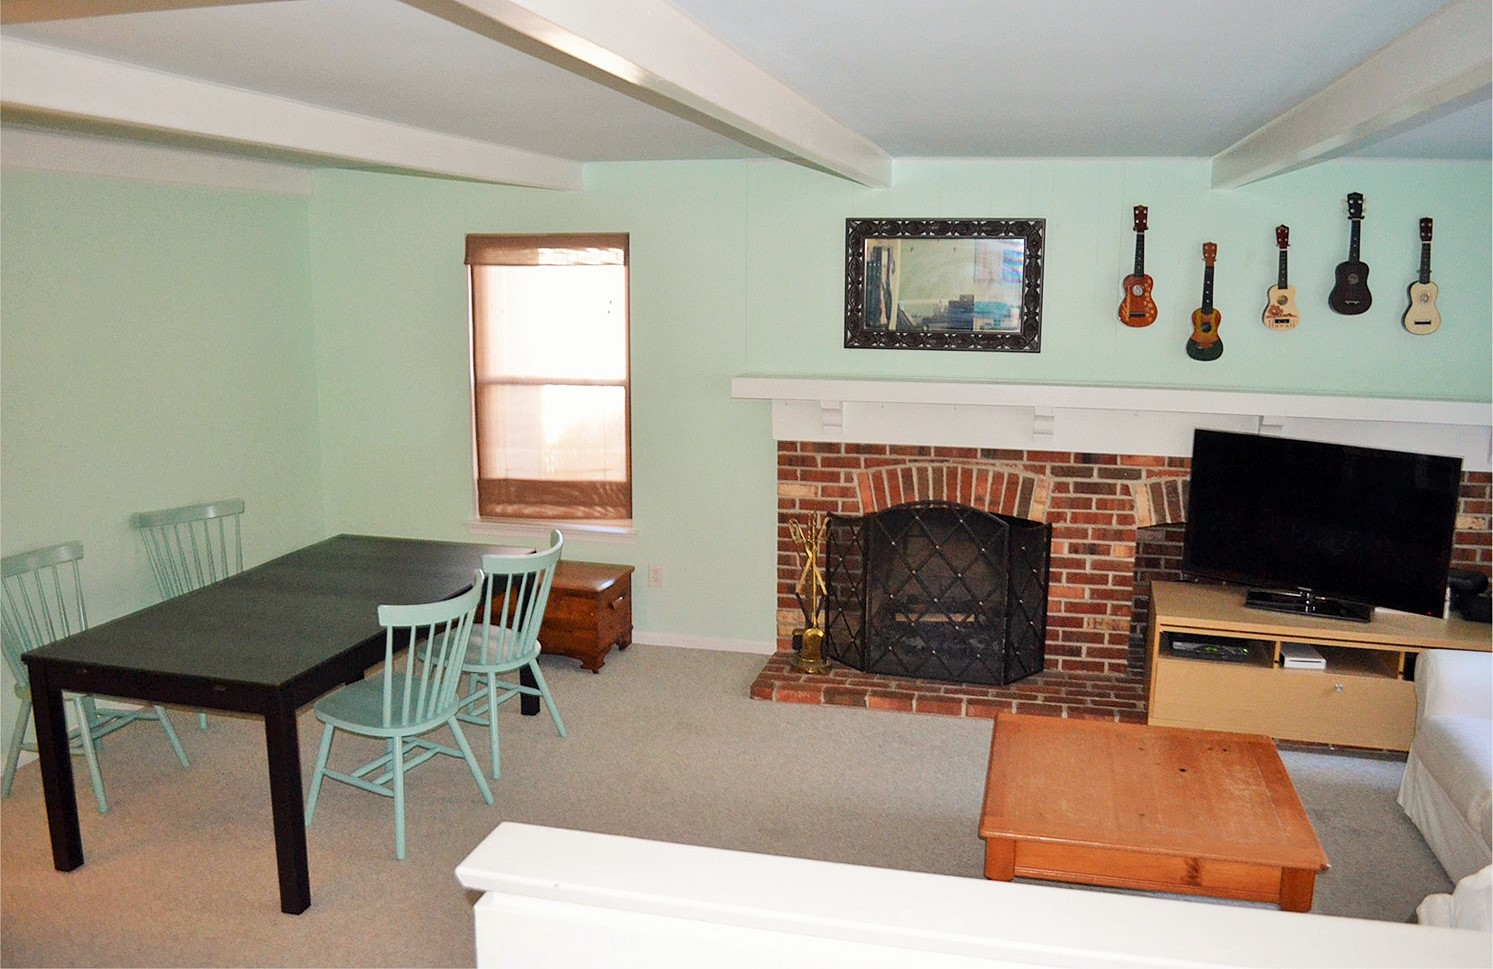 Family room in need of renovation